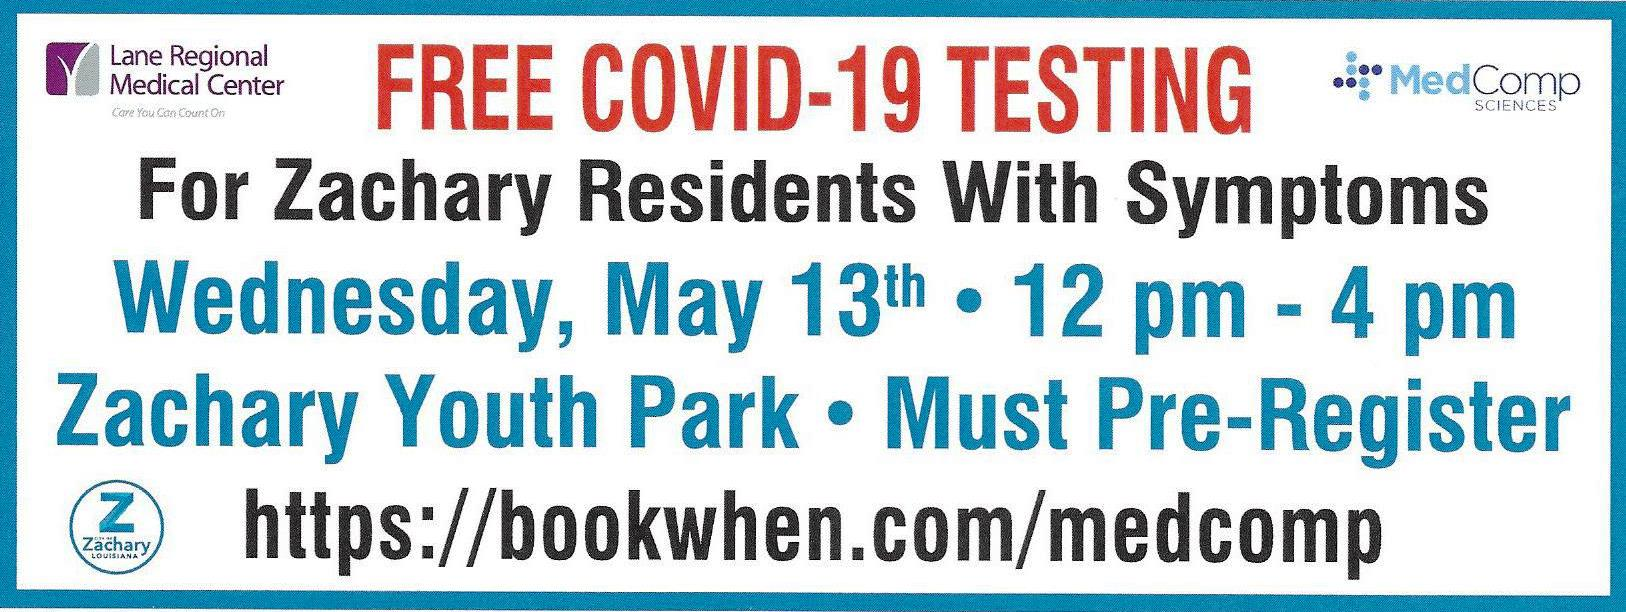 Free Covid-19 Testing for Zachary Residents Experiencing Symptoms